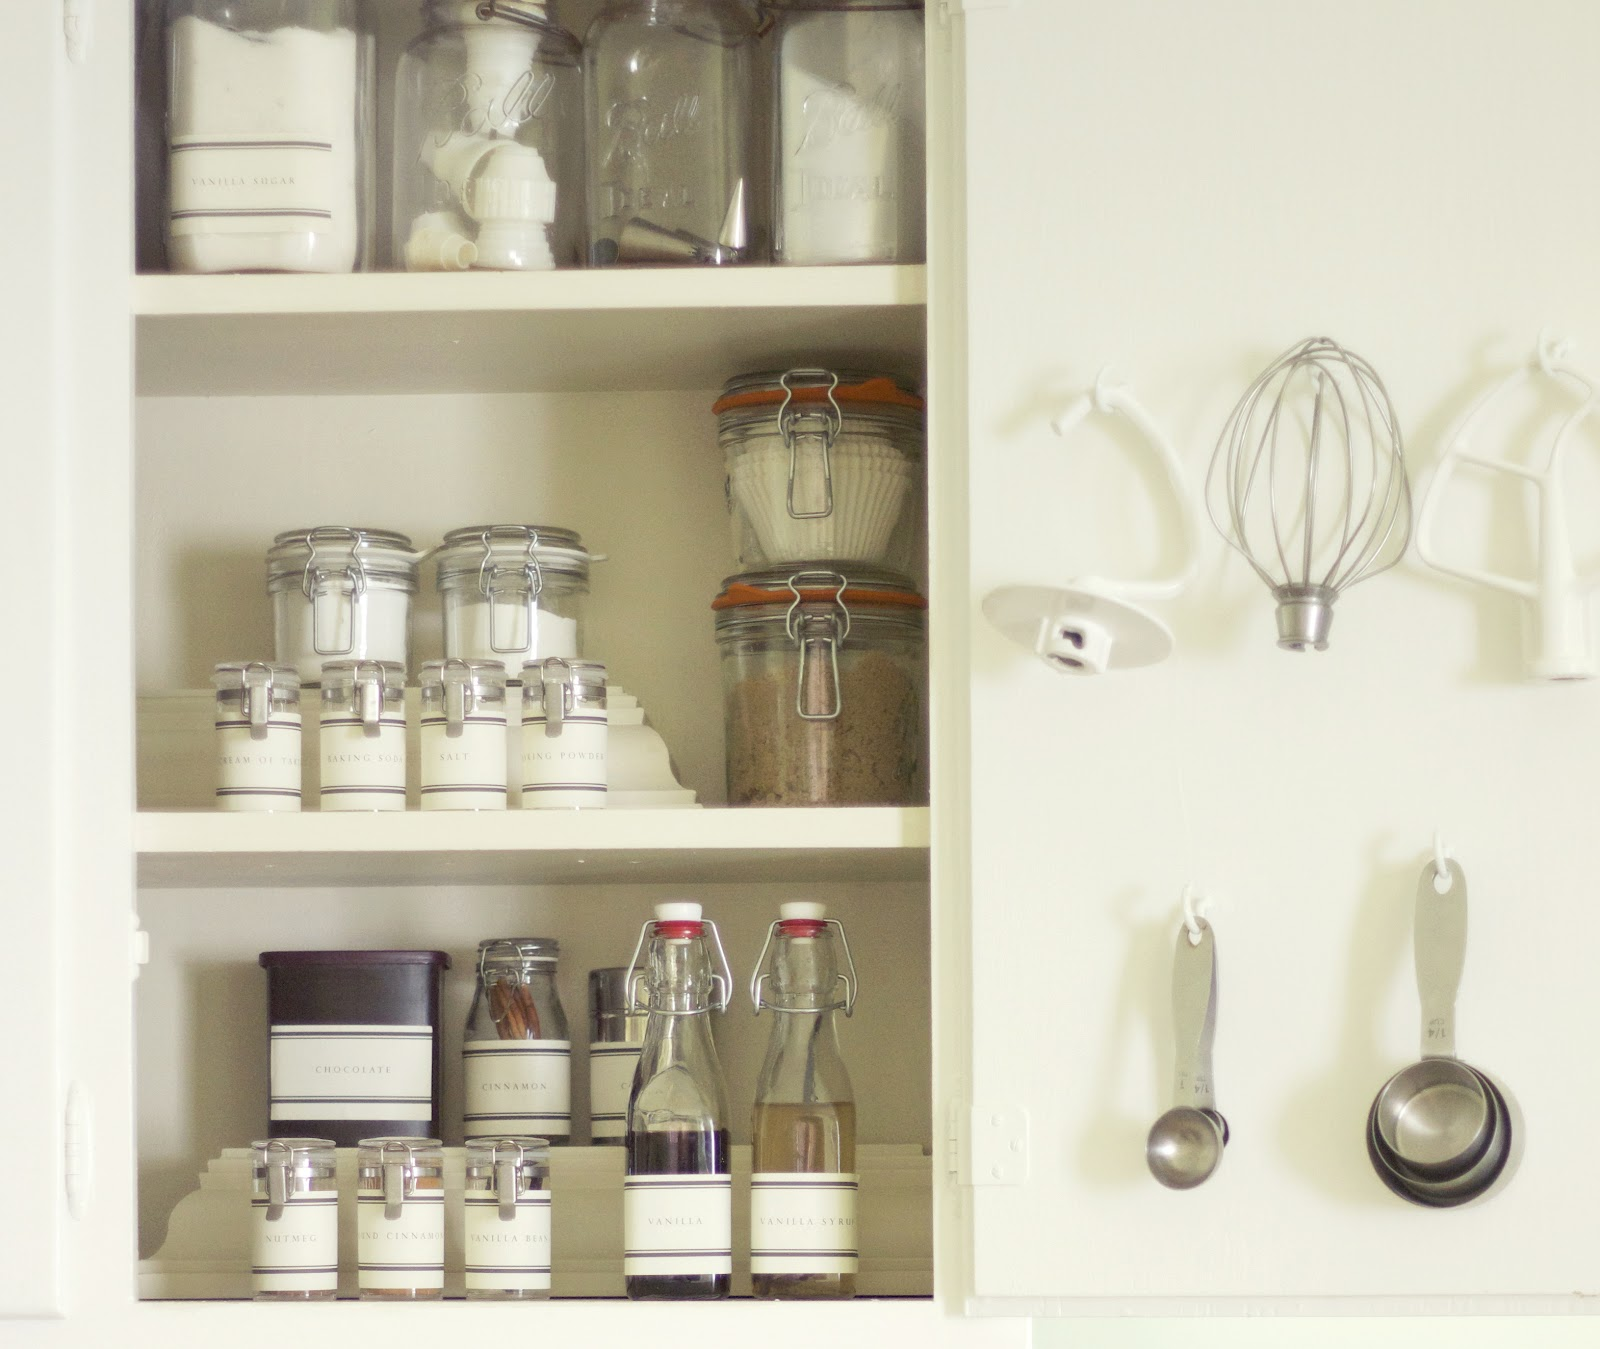 Effective Pantry Shelving Designs For Well Organized: Jenny Steffens Hobick: Baking Pantry In A Cabinet